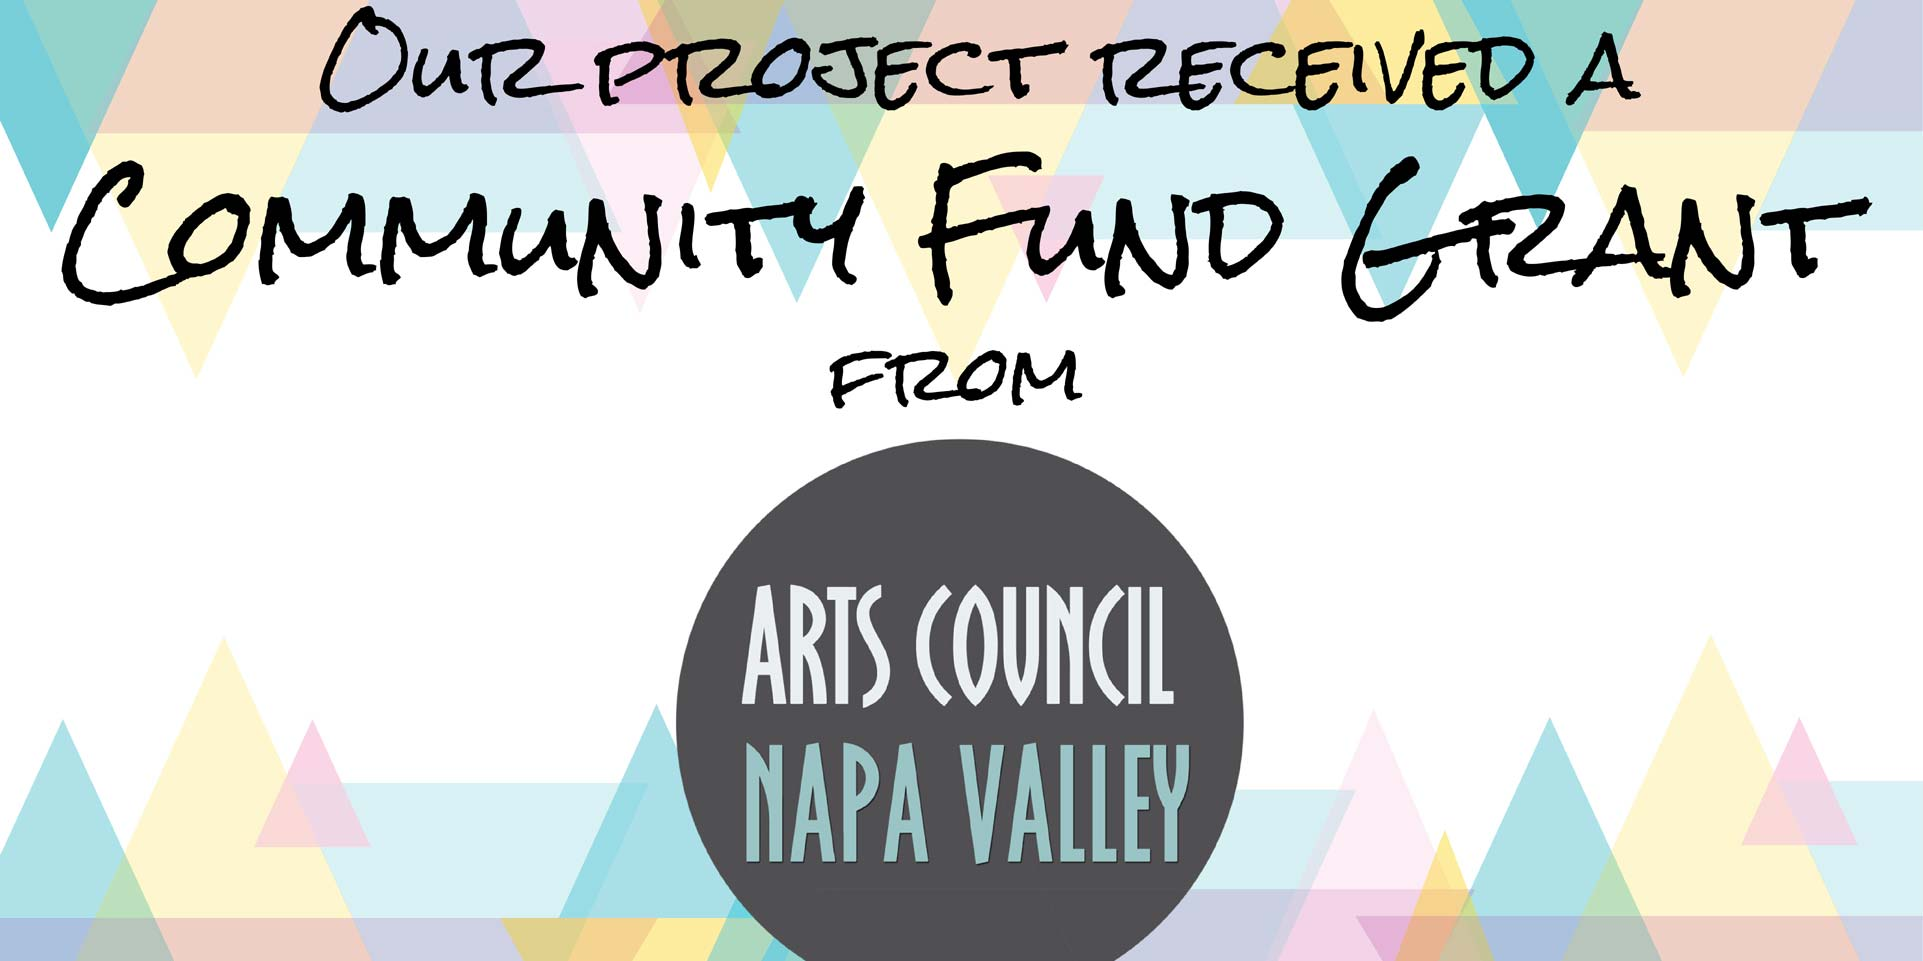 community fund grant from Napa Valley Arts Council